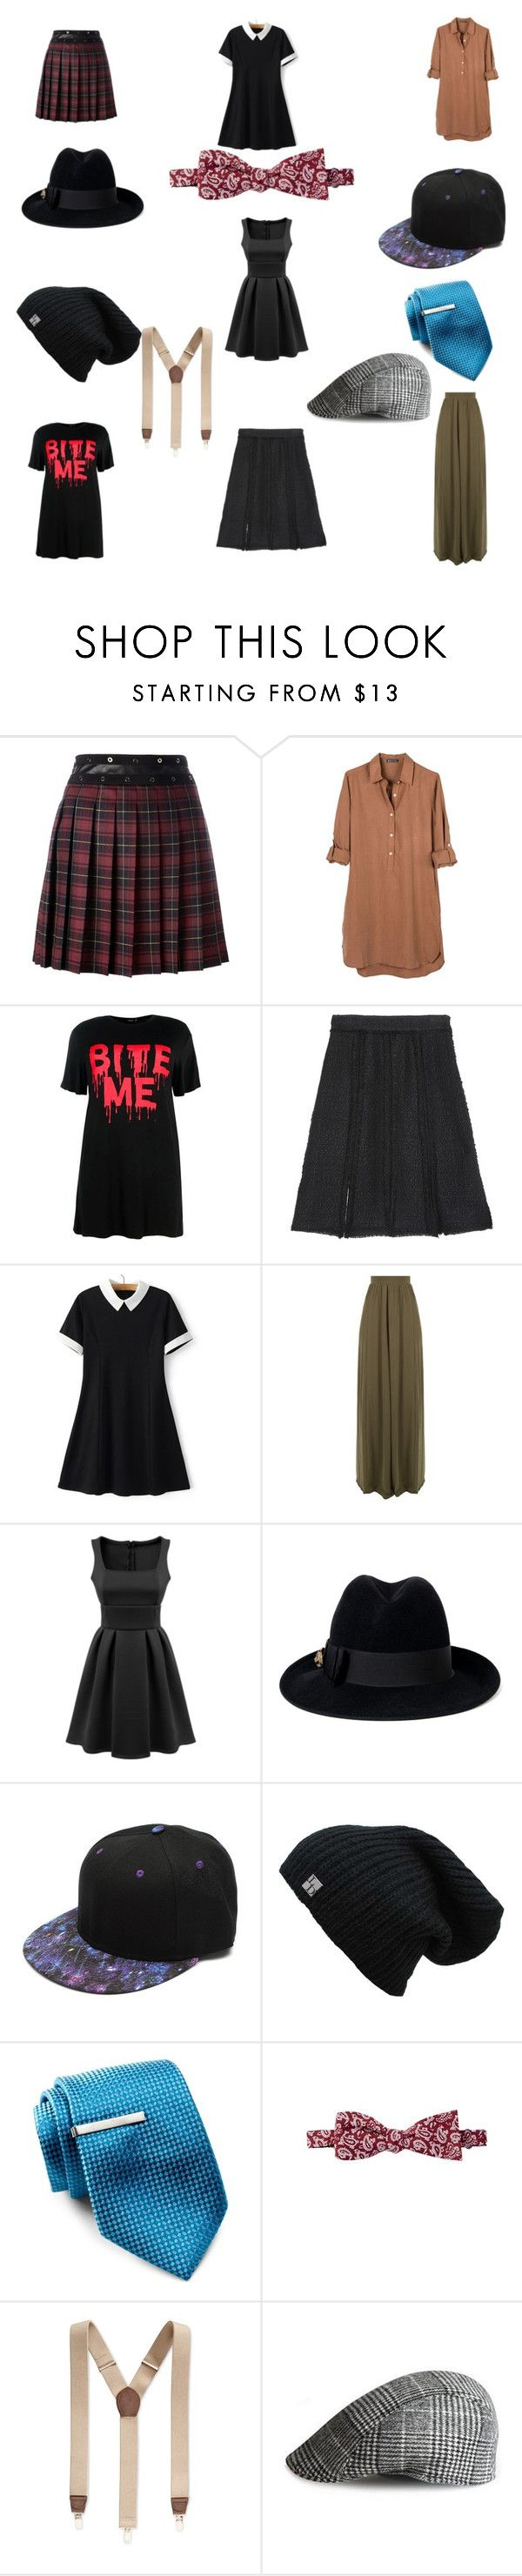 """""""FemBoi 7 Wonder Pt.2"""" by veganchefmarie on Polyvore featuring Giamba, United by Blue, Boohoo, Proenza Schouler, WithChic, Gucci, Broletto, 14th & Union and Club Room"""